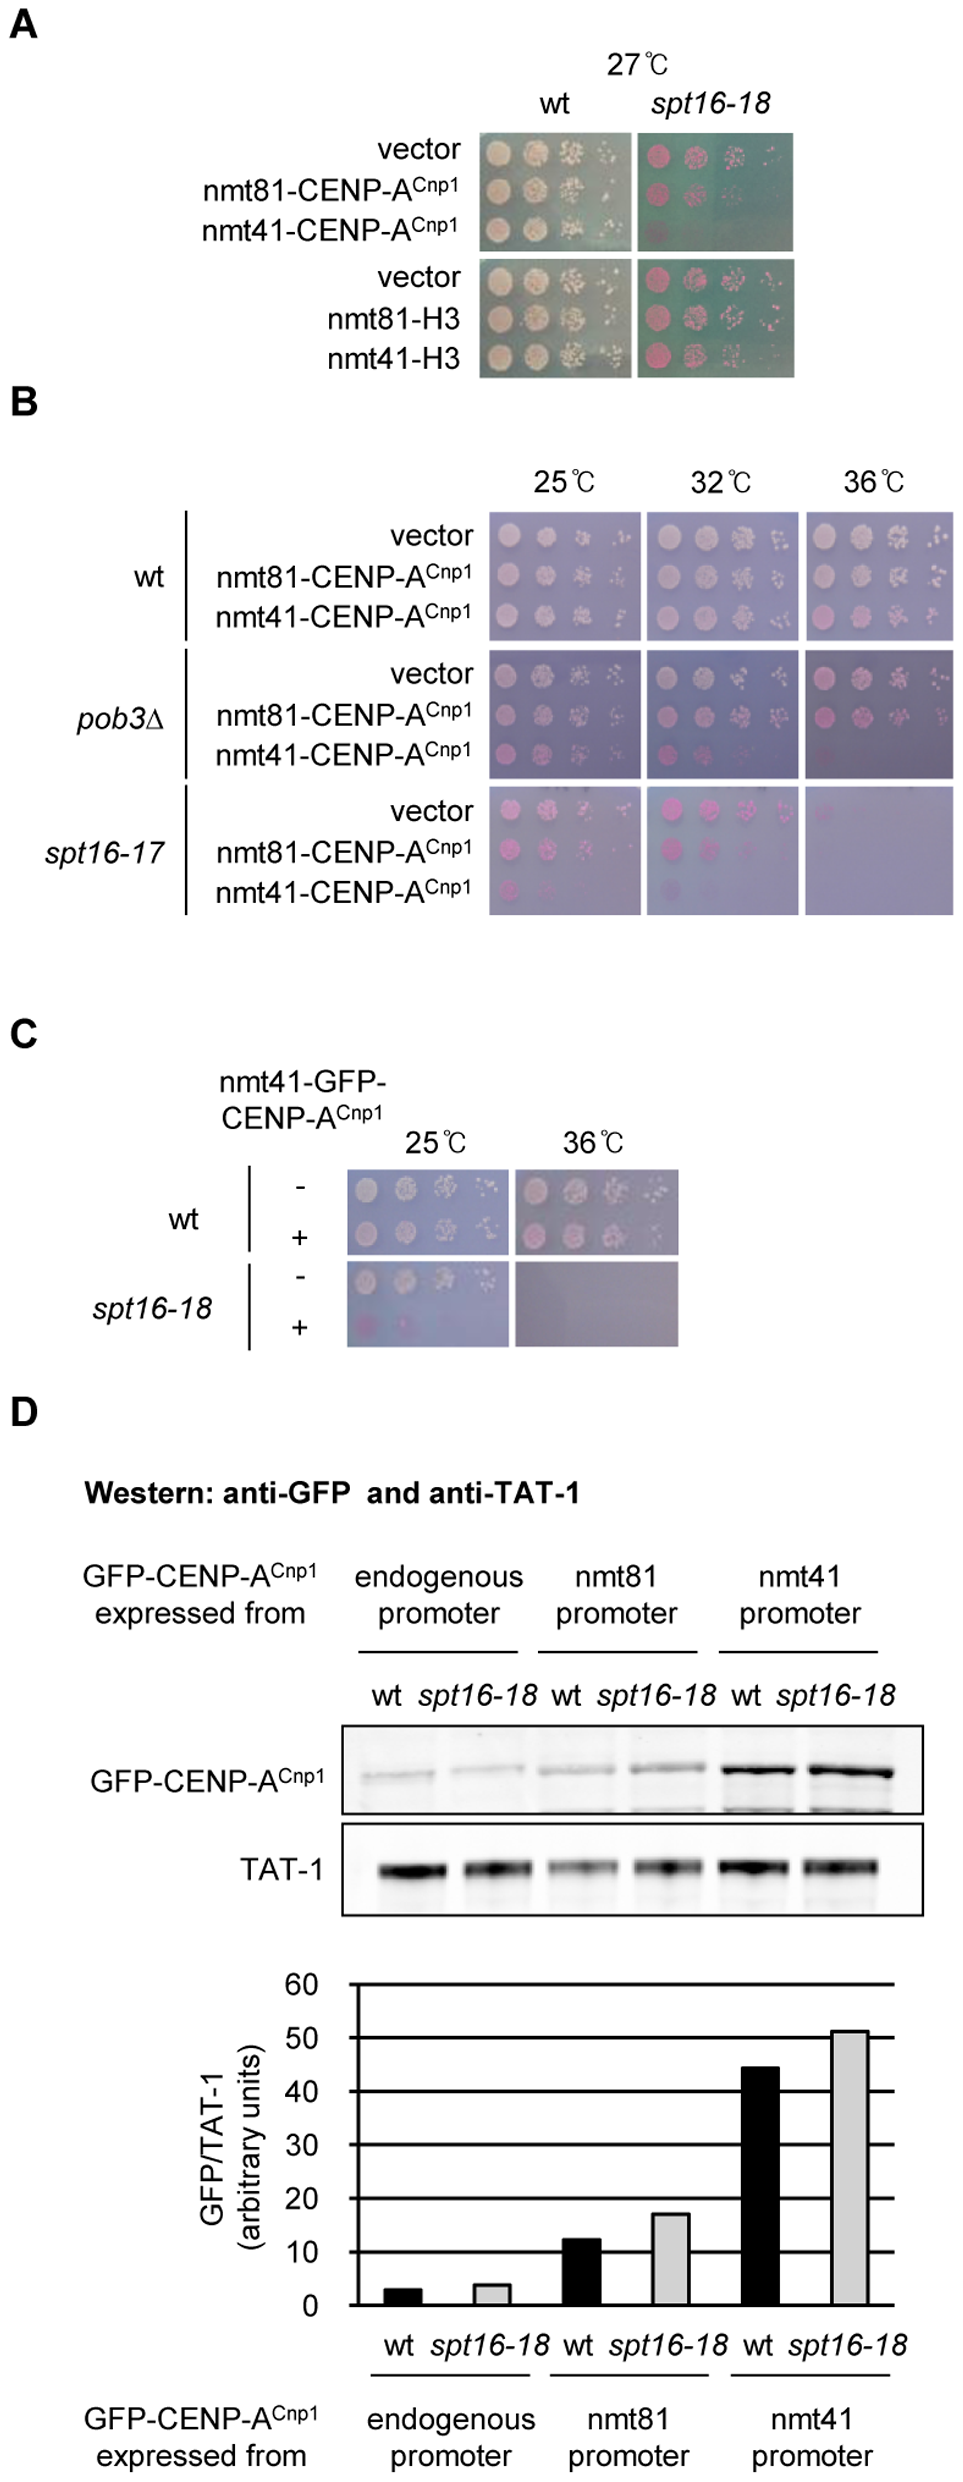 Overexpression of CENP-A<sup>Cnp1</sup> causes toxicity in FACT mutants.